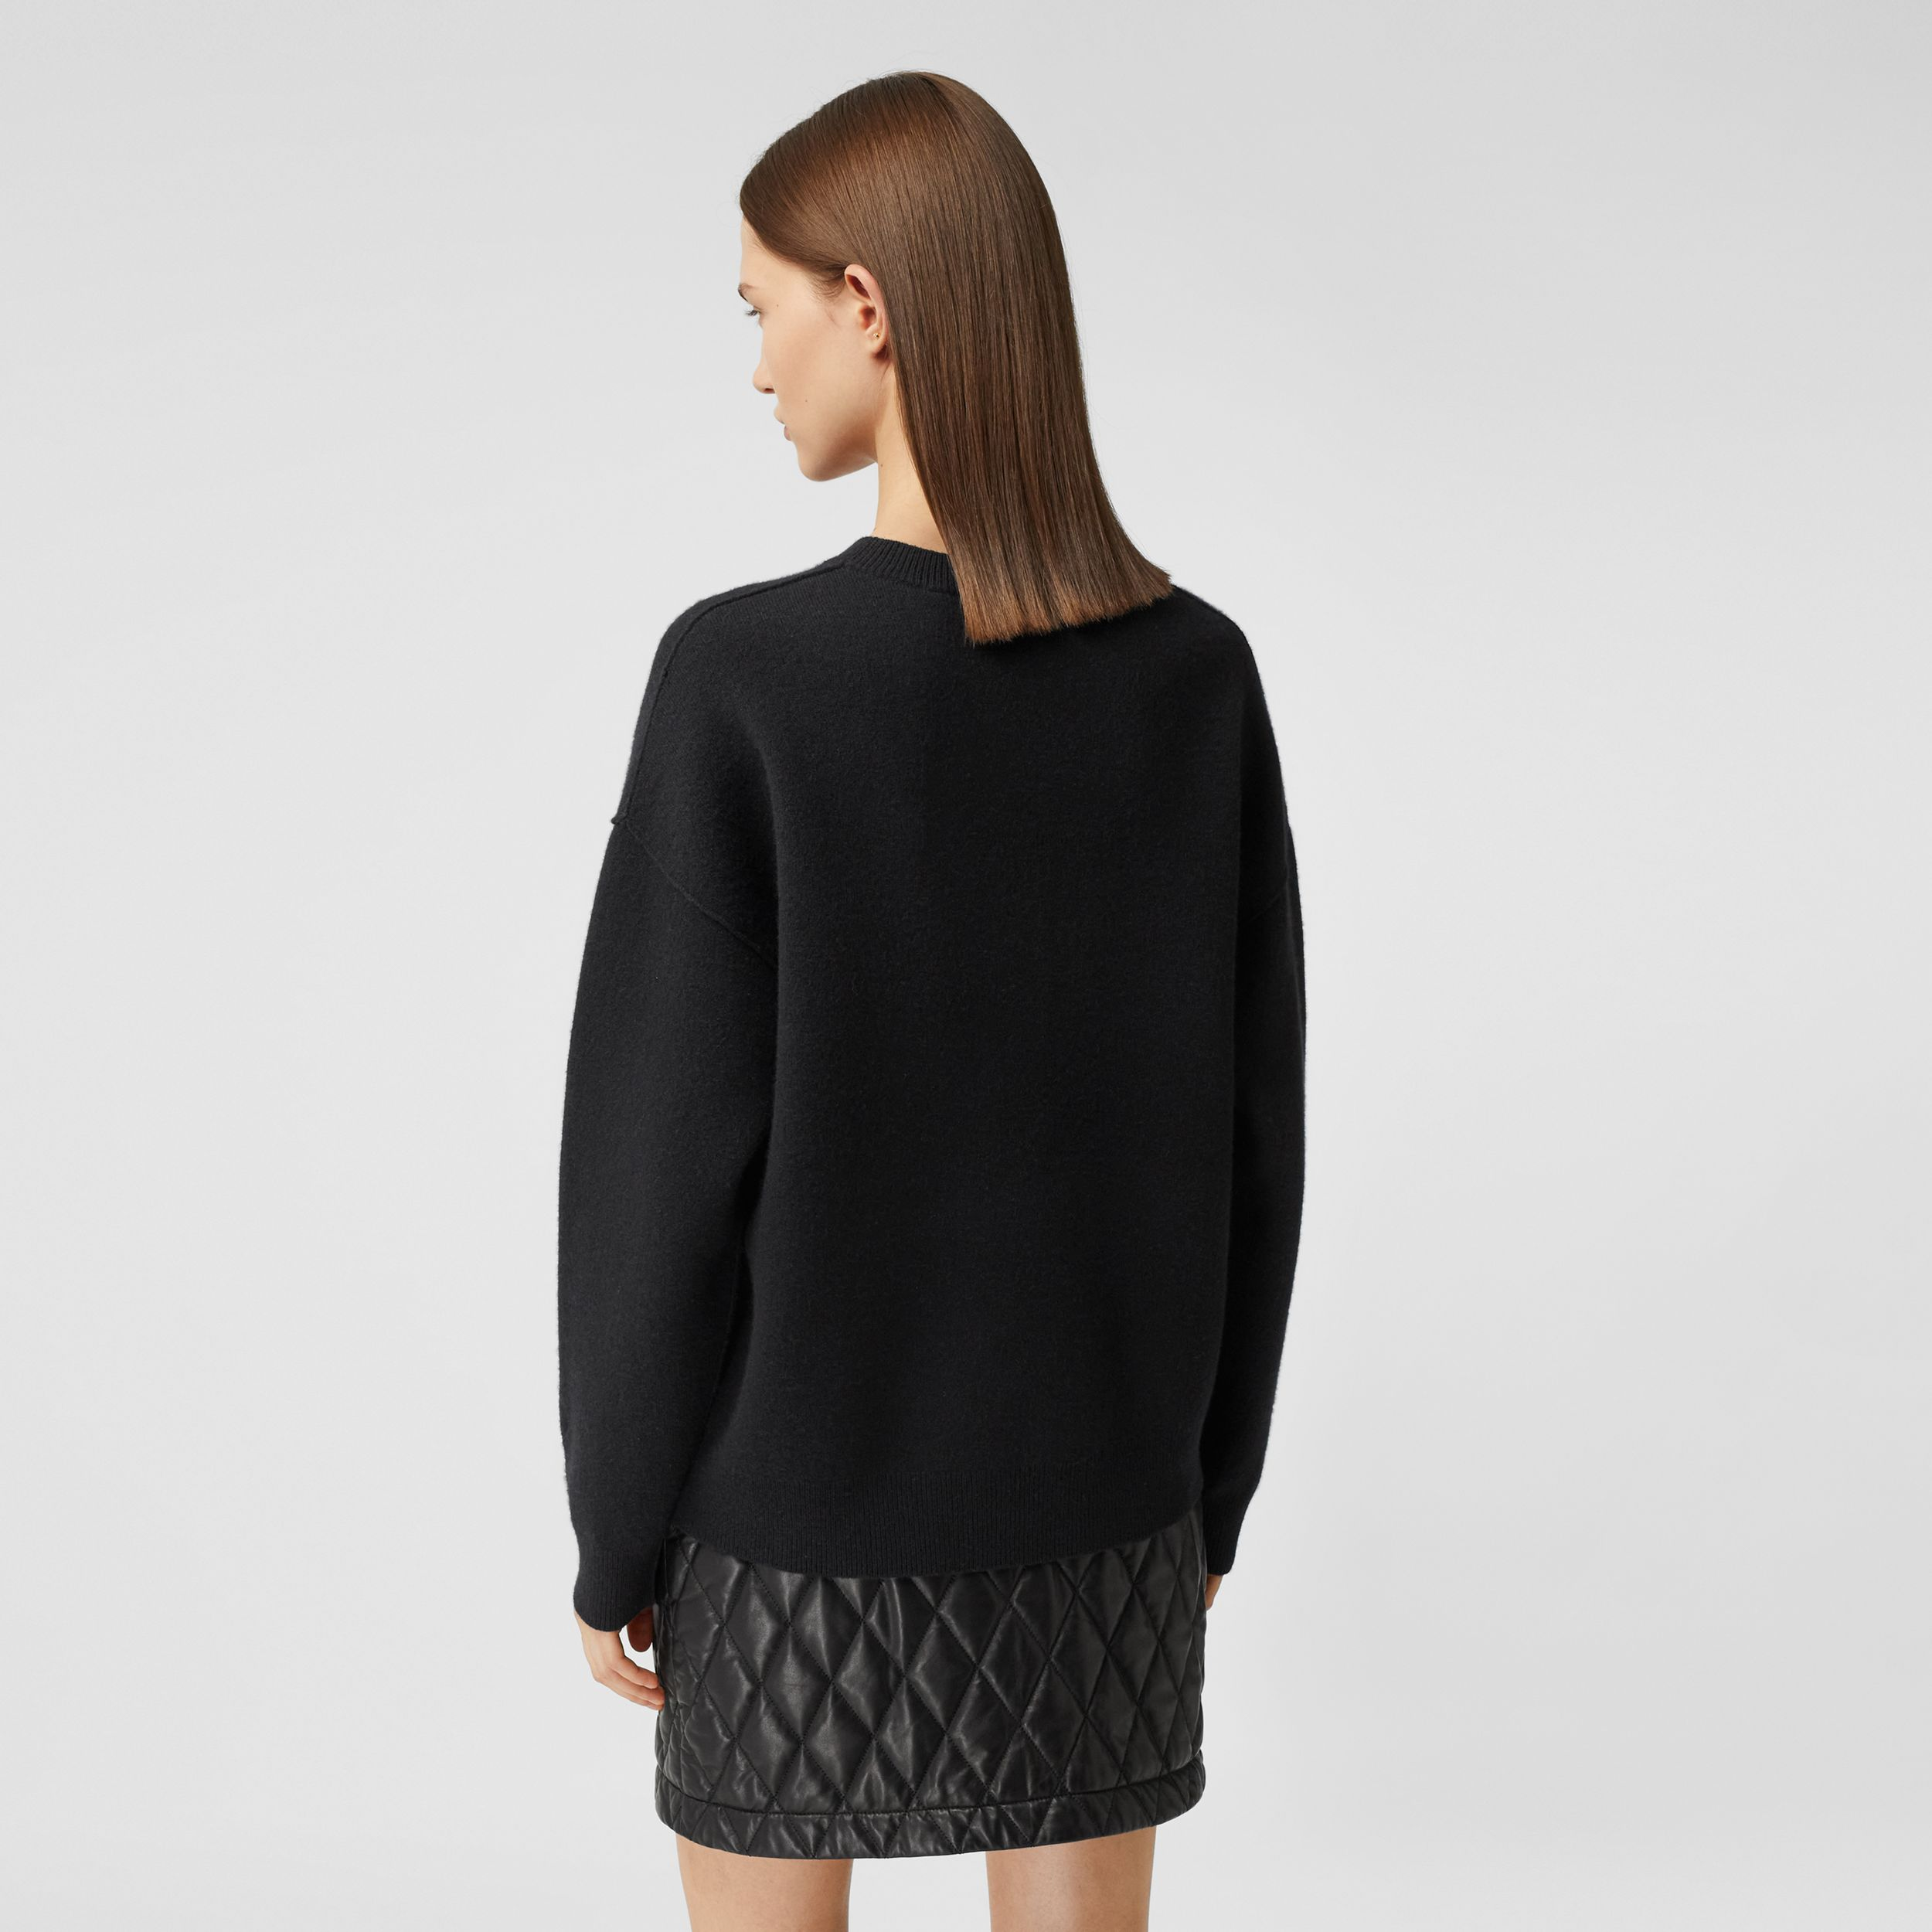 Monogram Motif Cashmere Blend Sweater in Black - Women | Burberry - 3